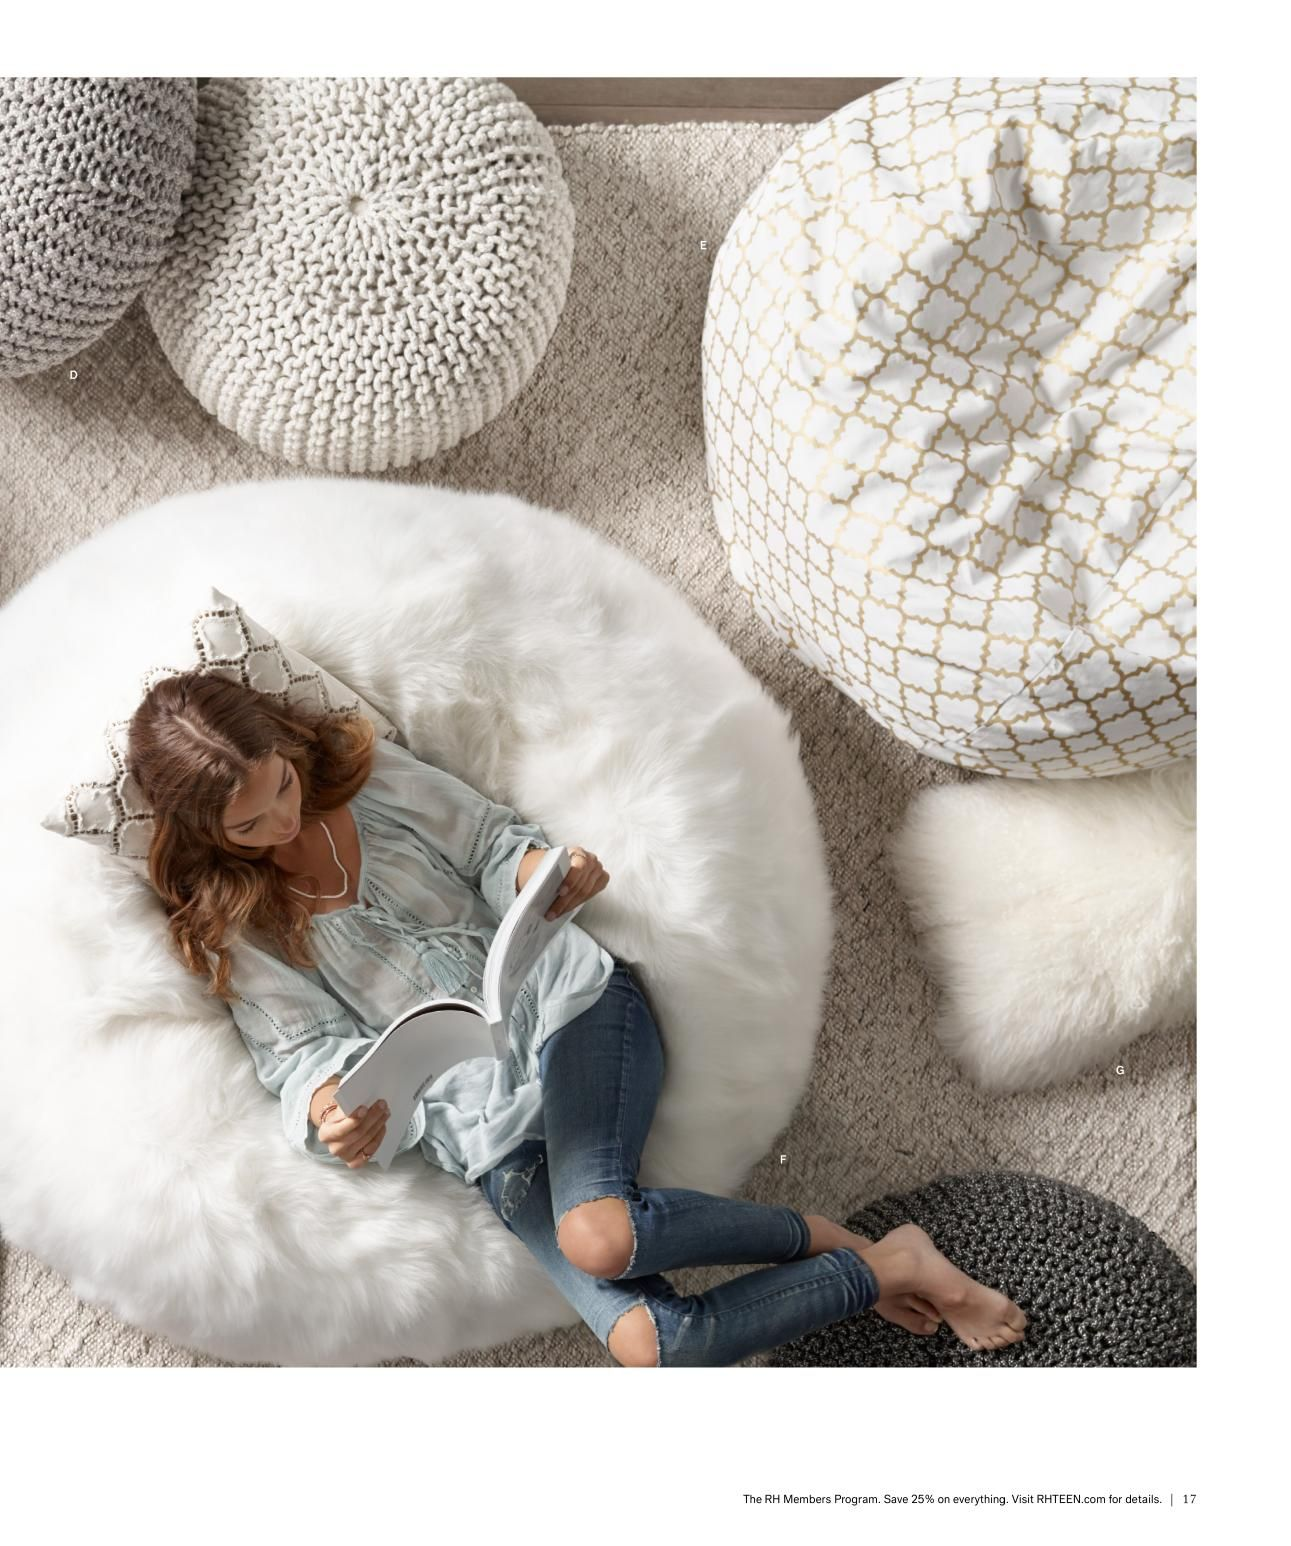 restoration hardware beanbag chair stores near me love the faux fur bean bag and pillow meadowbrook